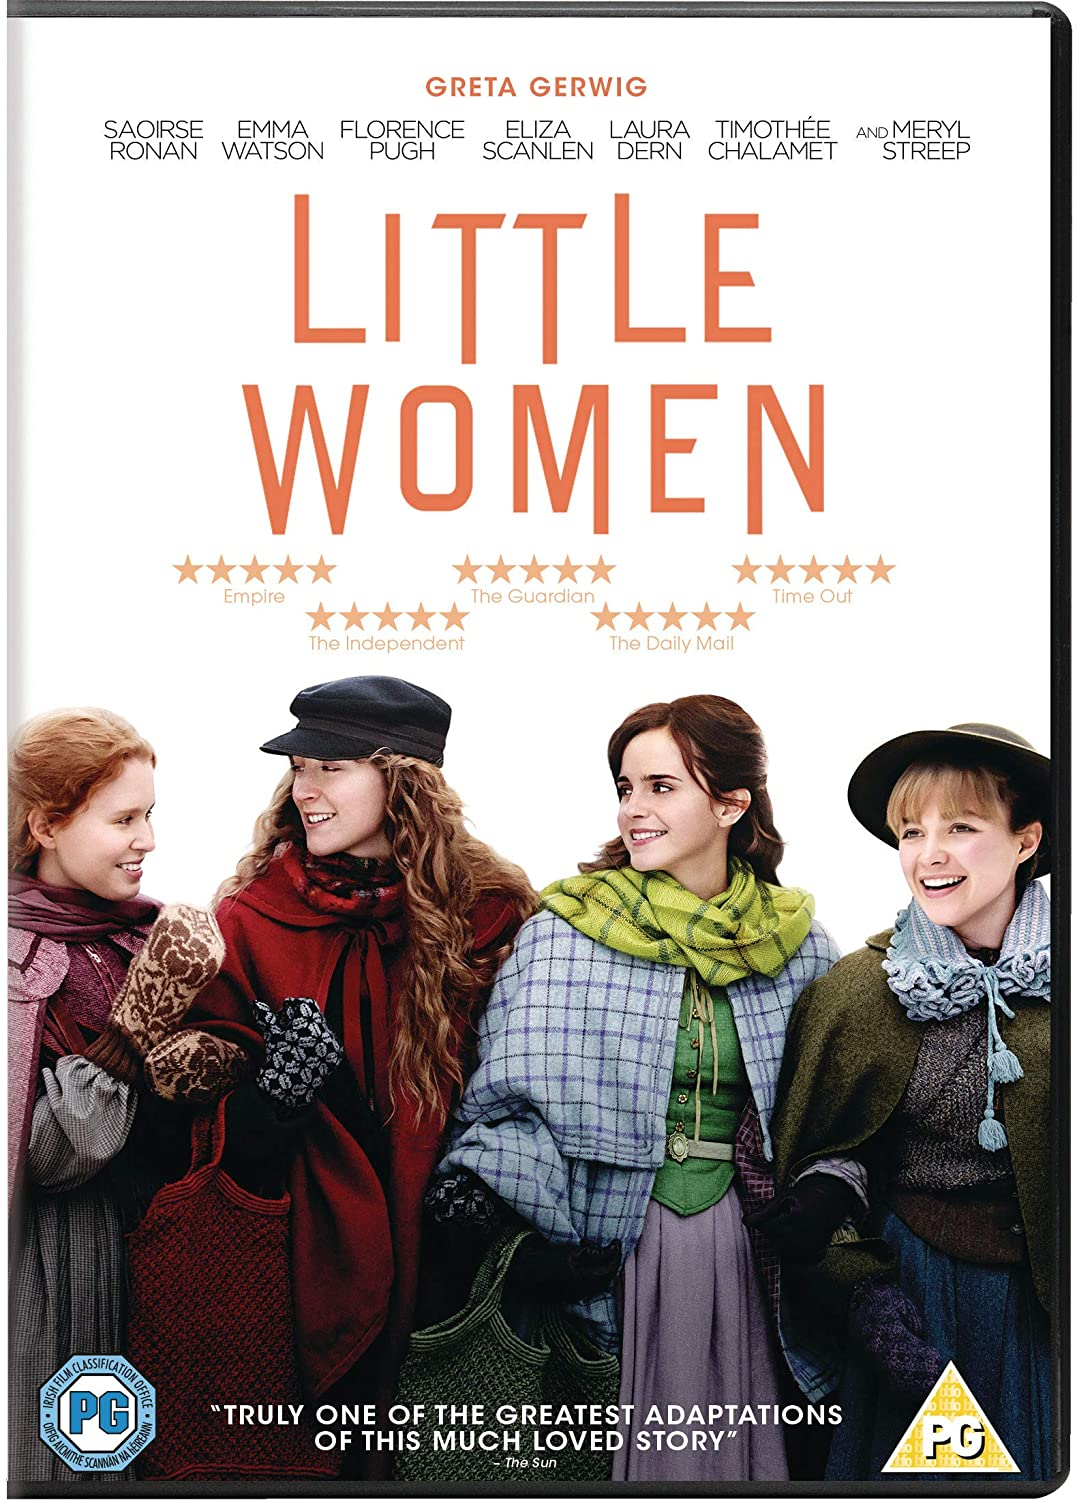 Little Women - Greta Gerwig [DVD]